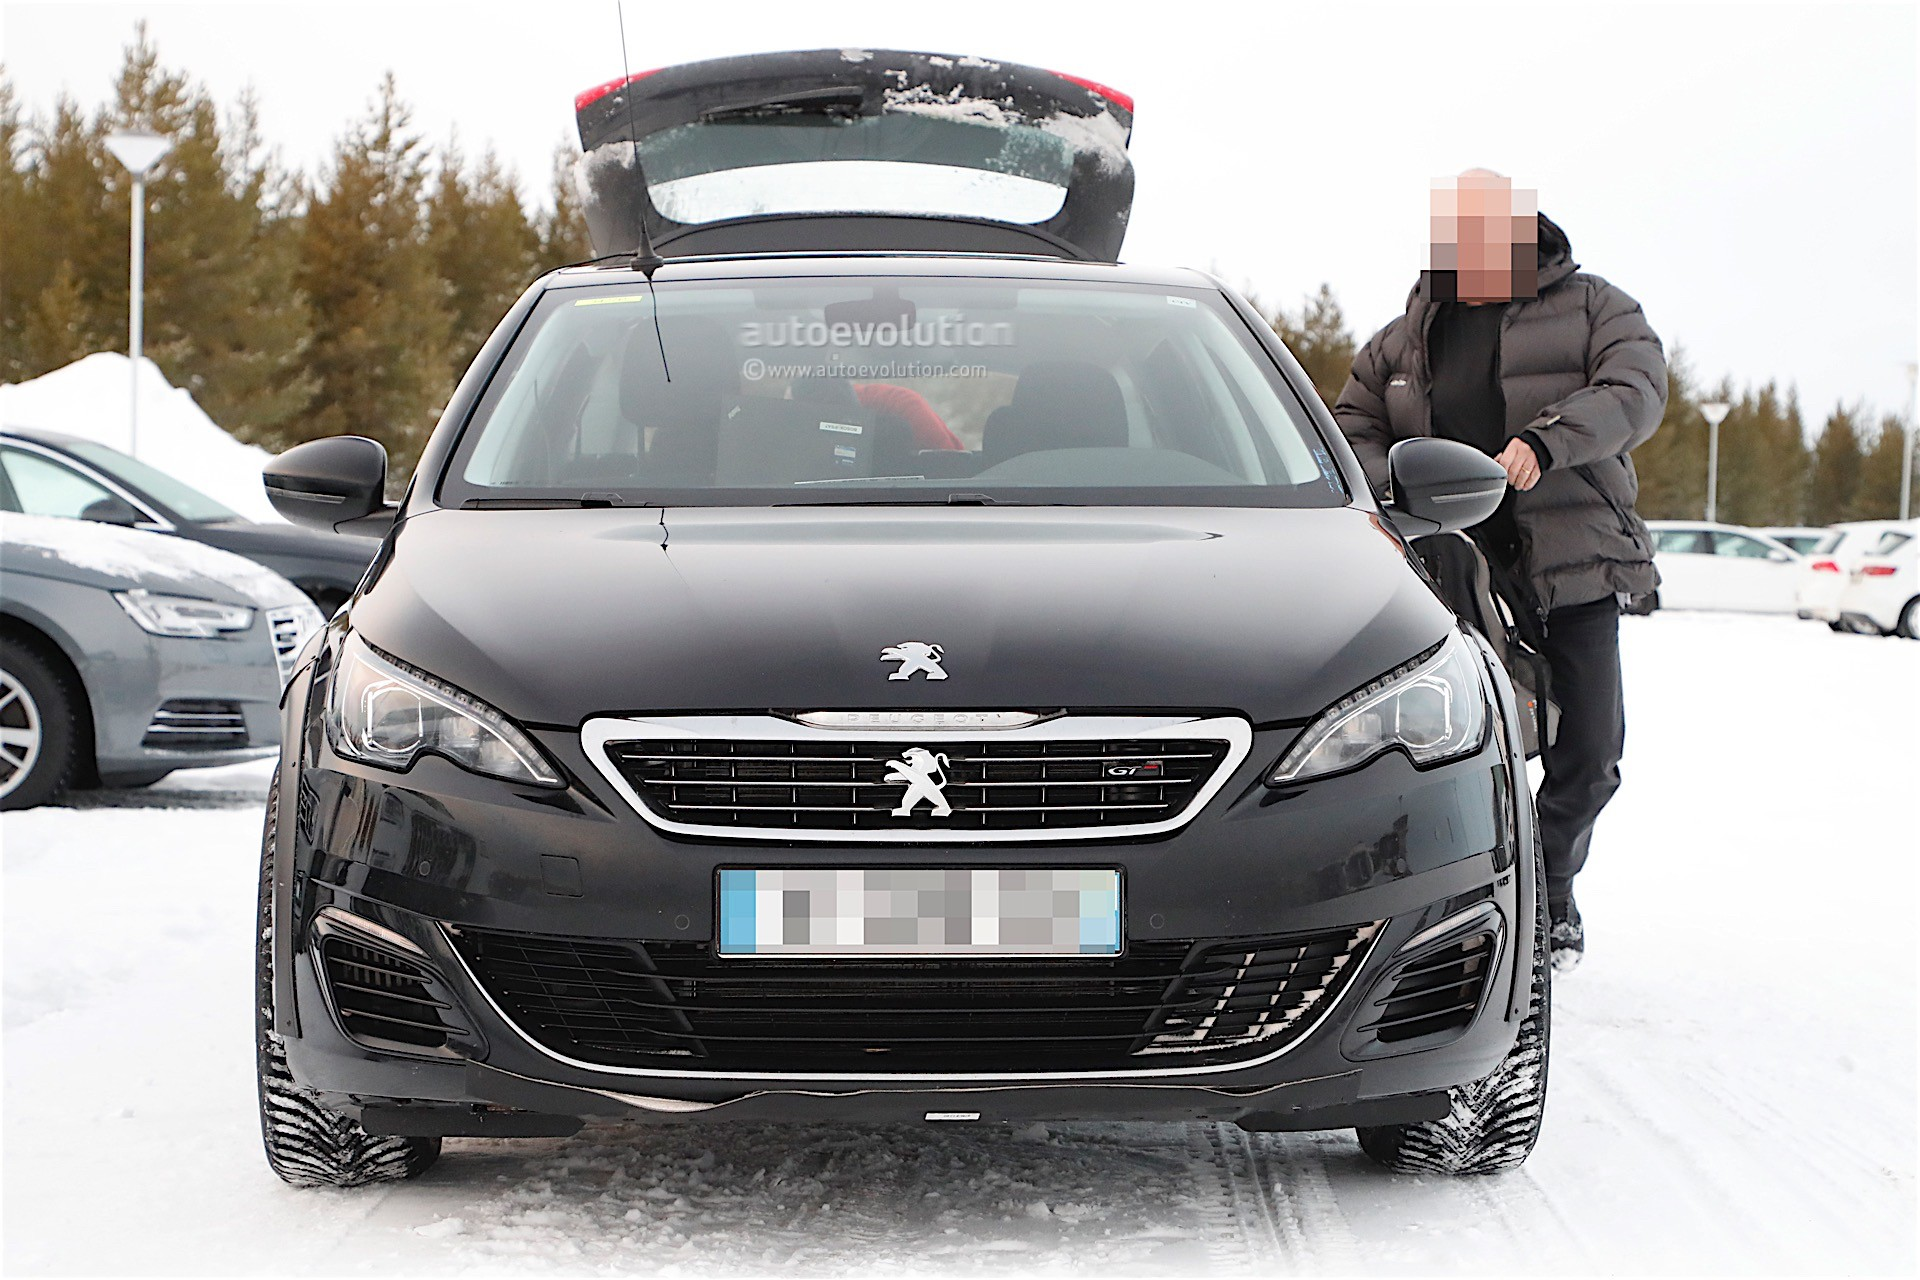 2018 peugeot 308 sw. modren 308 peugeot 508 mule with modified 308 sw body in 2018 peugeot sw